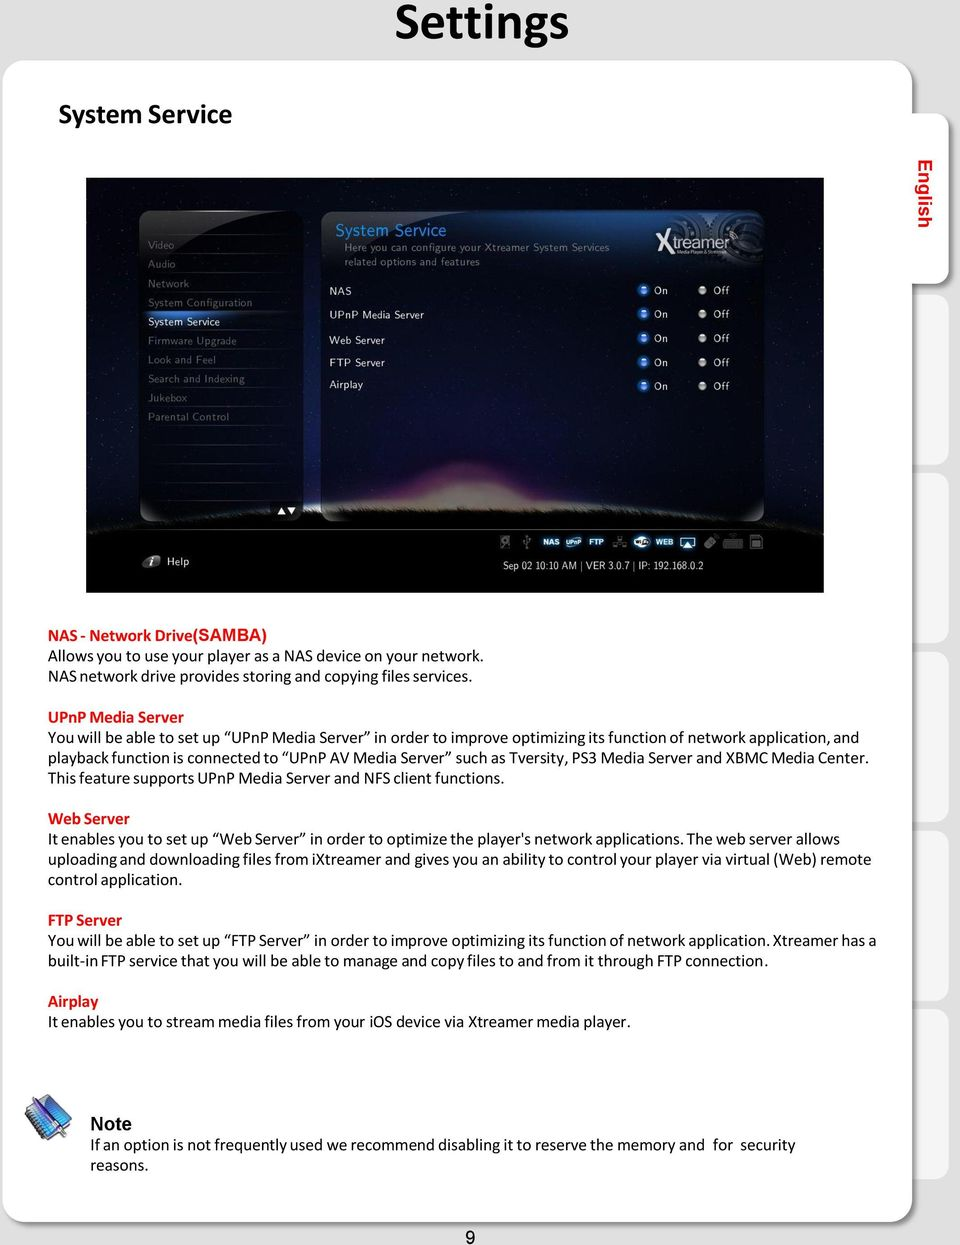 Tversity, PS3 Media Server and XBMC Media Center. This feature supports UPnP Media Server and NFS client functions.